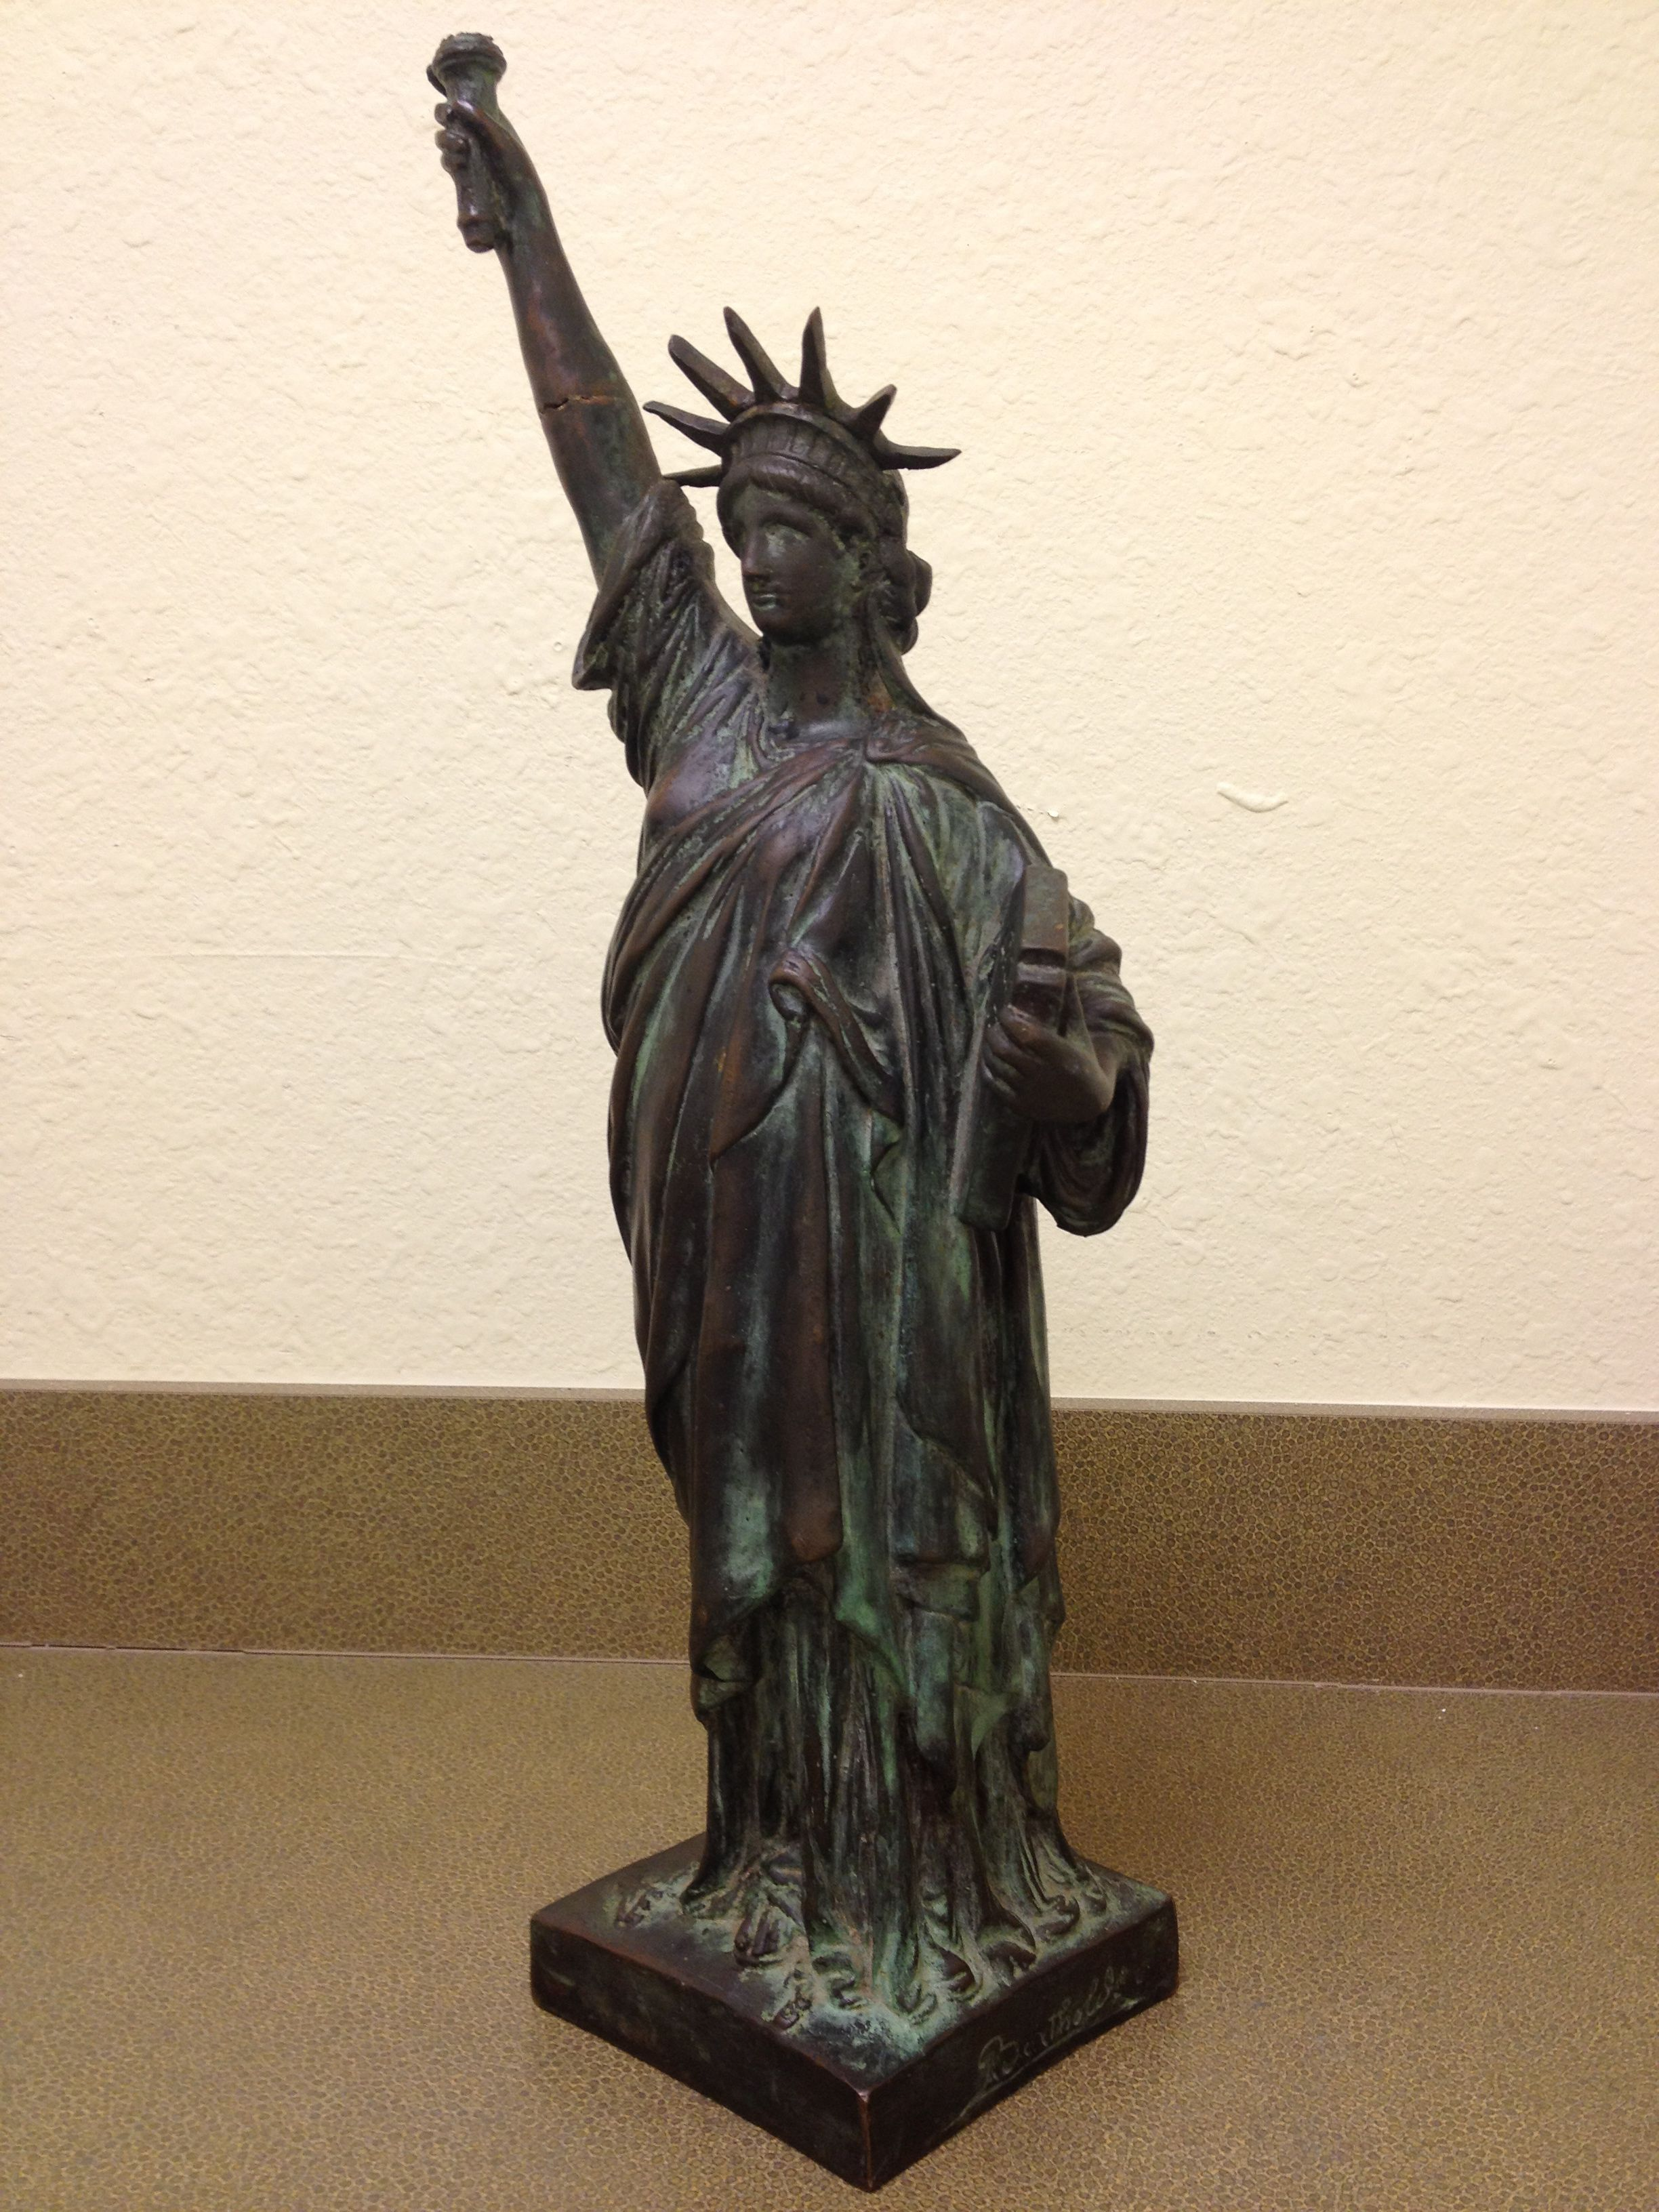 One Of The Earliest Bronzes Of The Statue Of Liberty